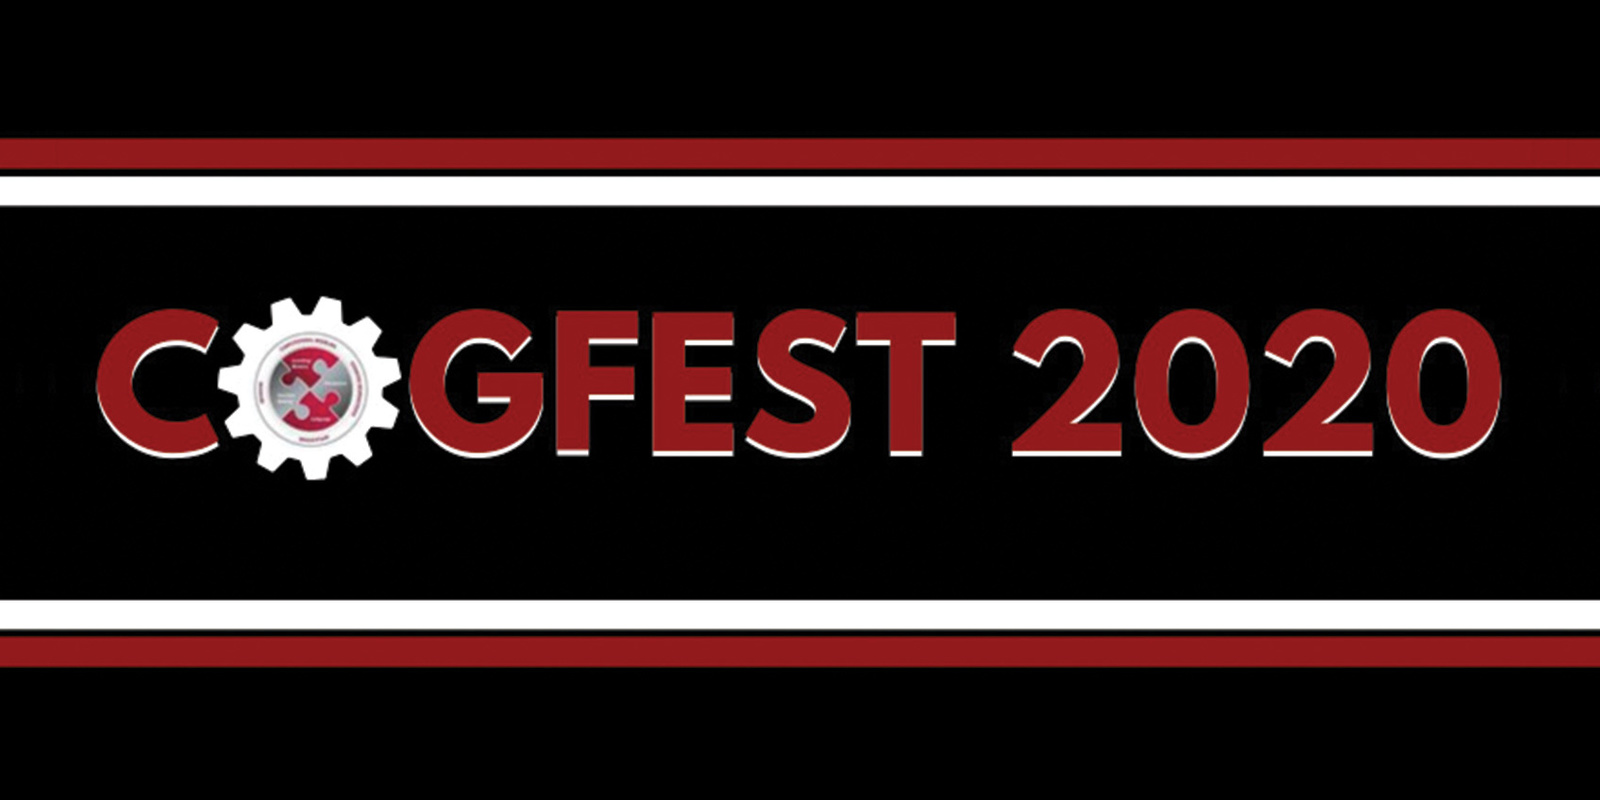 CogFest 2020 Screening and Panel Discussion